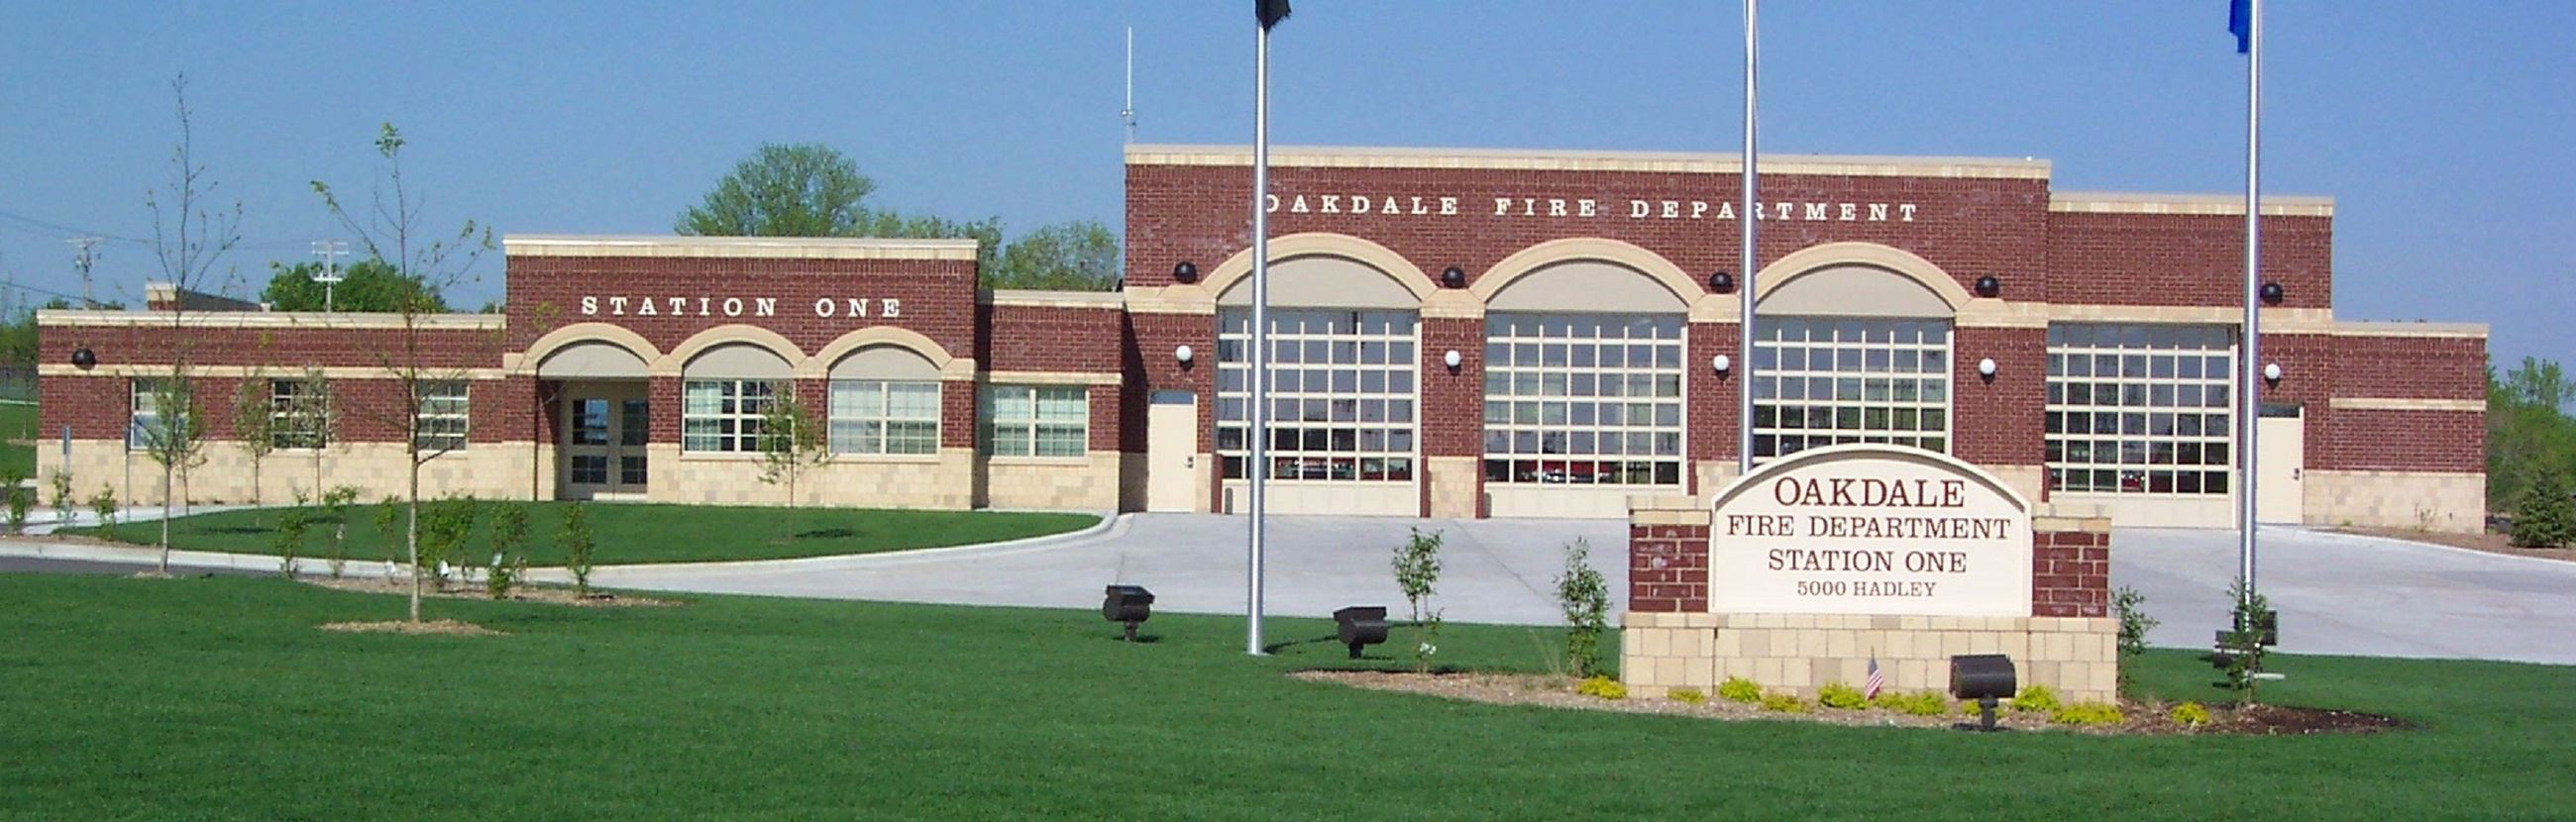 Photo of Oakdale Fire Station Headquarters located at 5000 Hadley Avenue